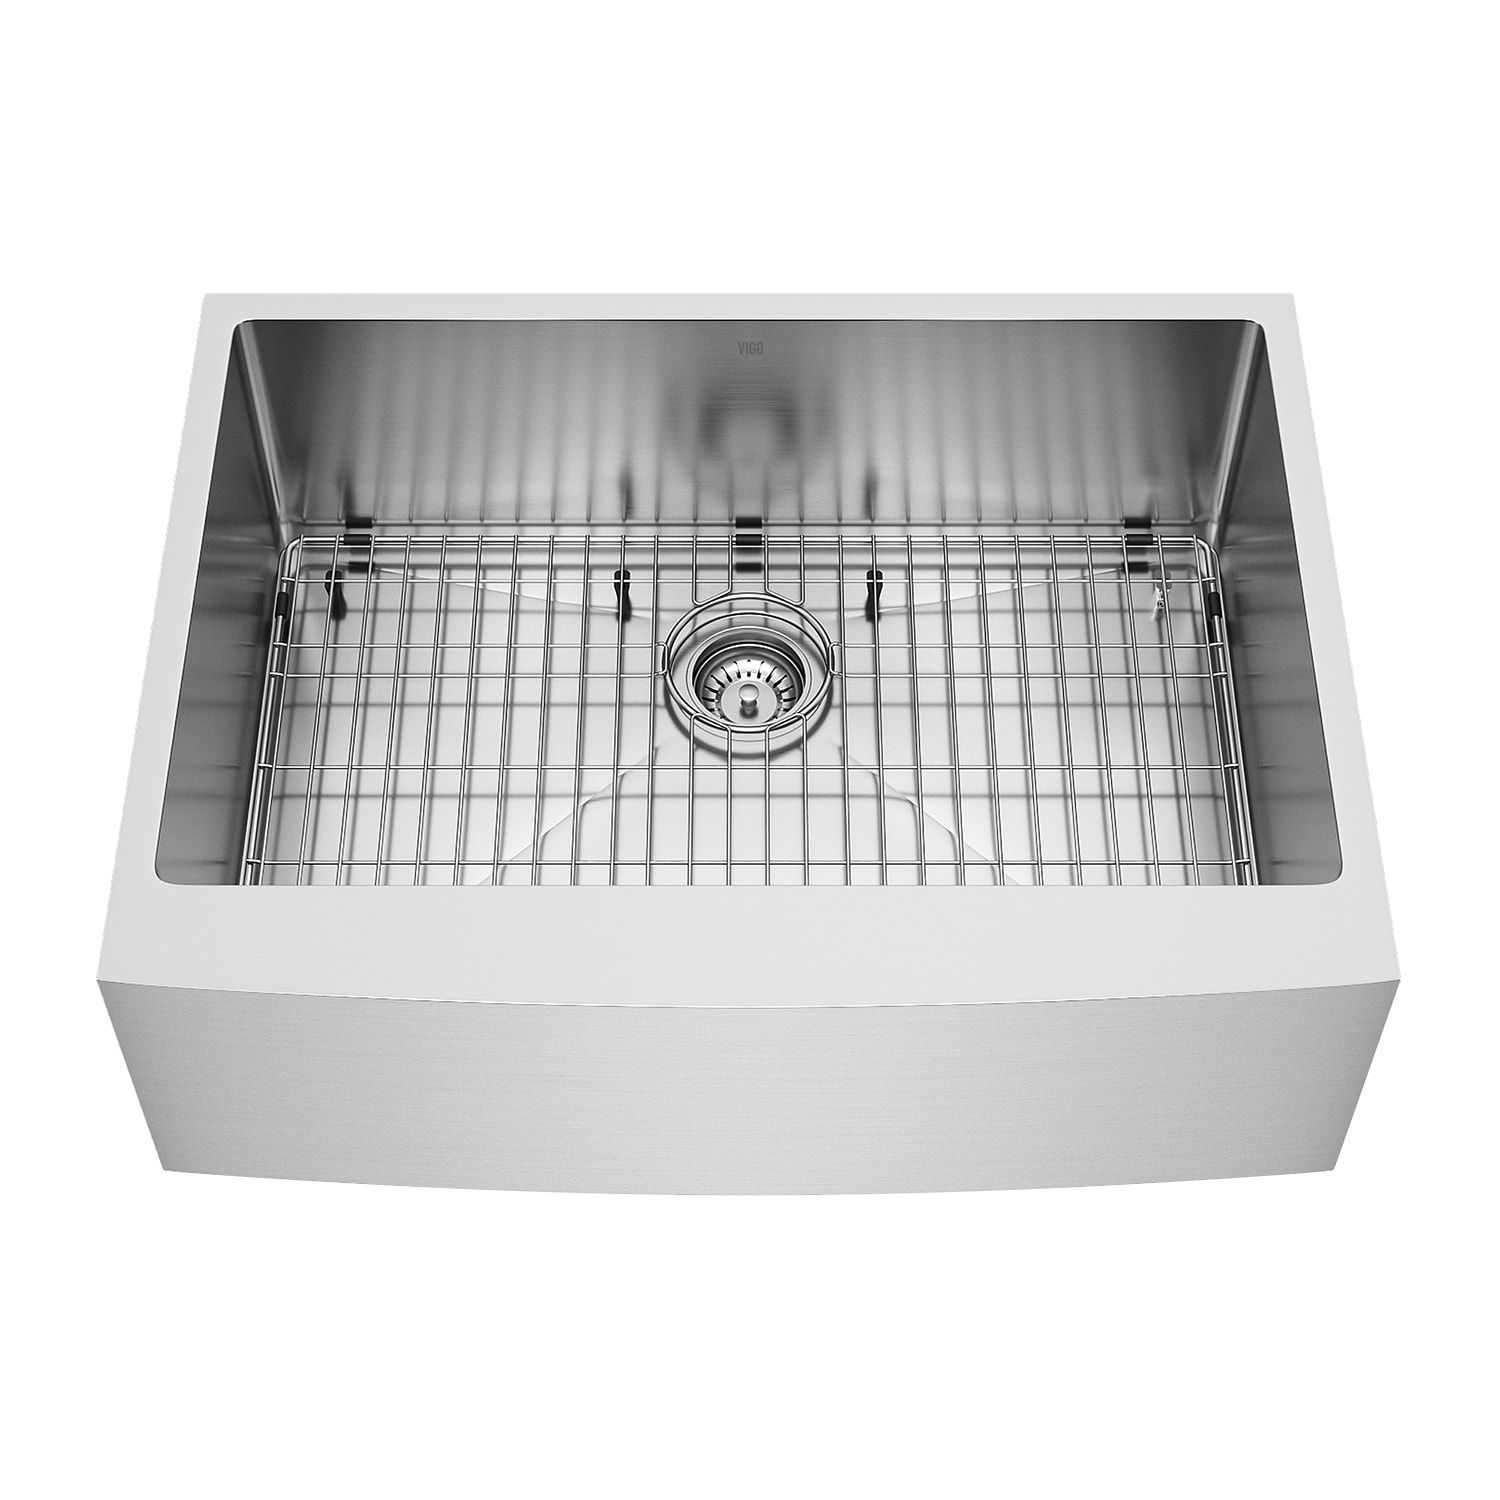 Vigo 30 Inch Bedford Stainless Steel Farmhouse Sink Grid And Strainer Final Ly Farmhouse Sink Kitchen Stainless Steel Farmhouse Sink Kitchen Fixtures